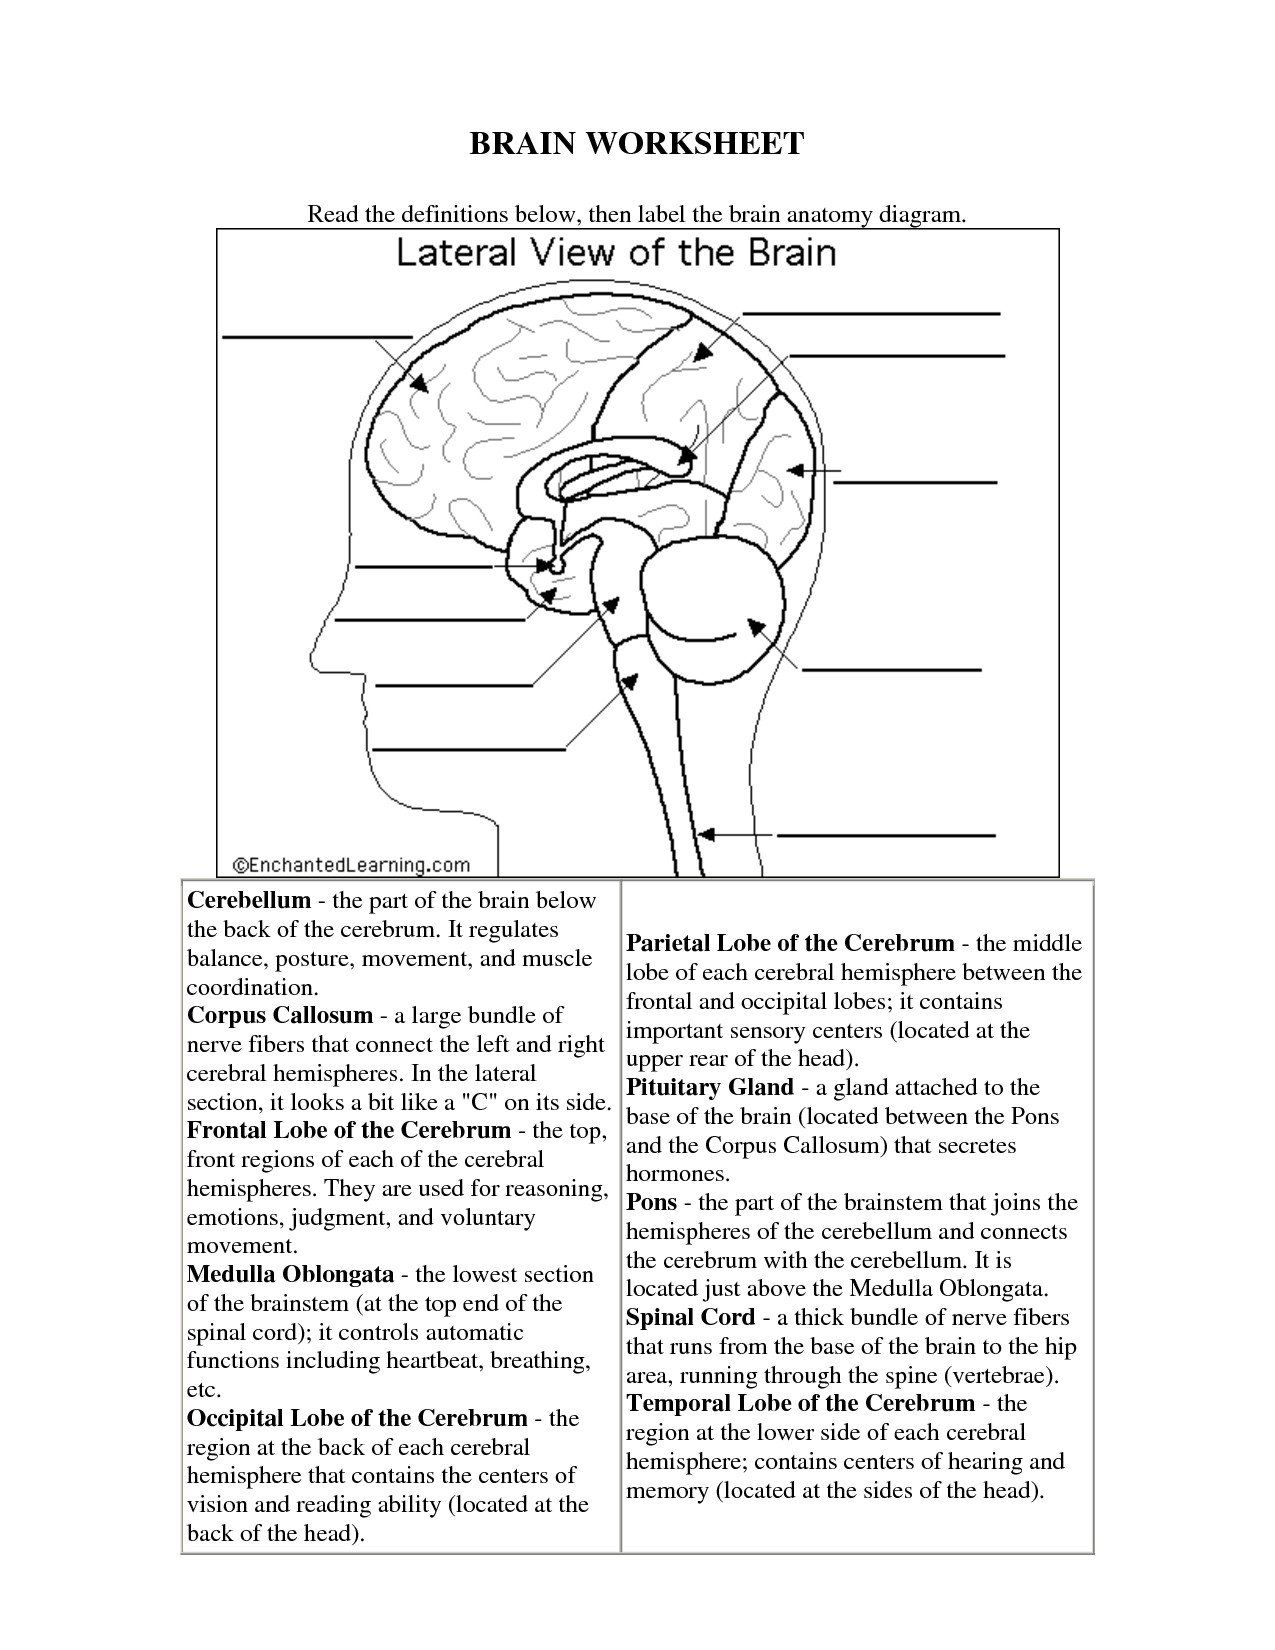 Labeling The Brain Worksheet Inspirational Brain Worksheet